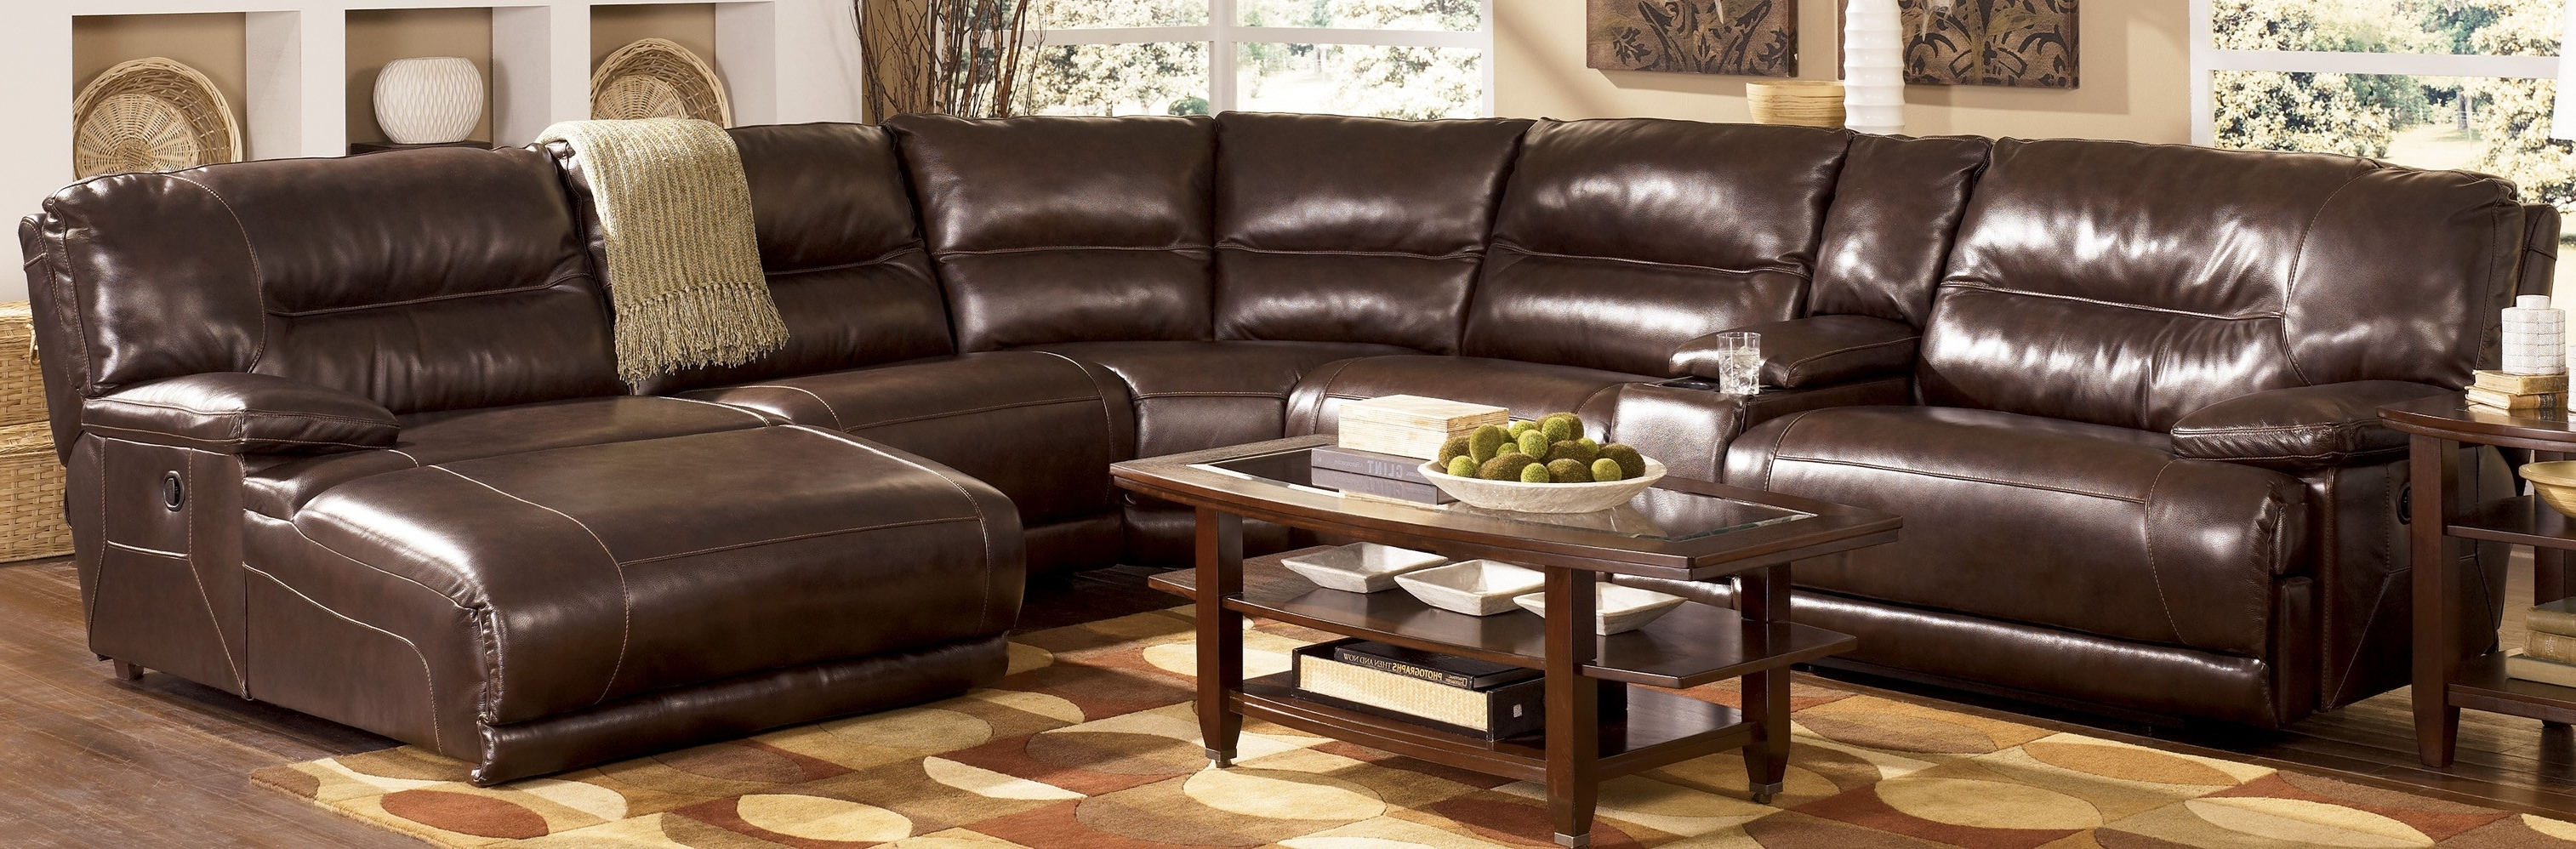 Most Current Tan Sectionals With Chaise With Leather Sectional Sleeper Sofa Sectional Sofas With Recliners And (View 14 of 15)